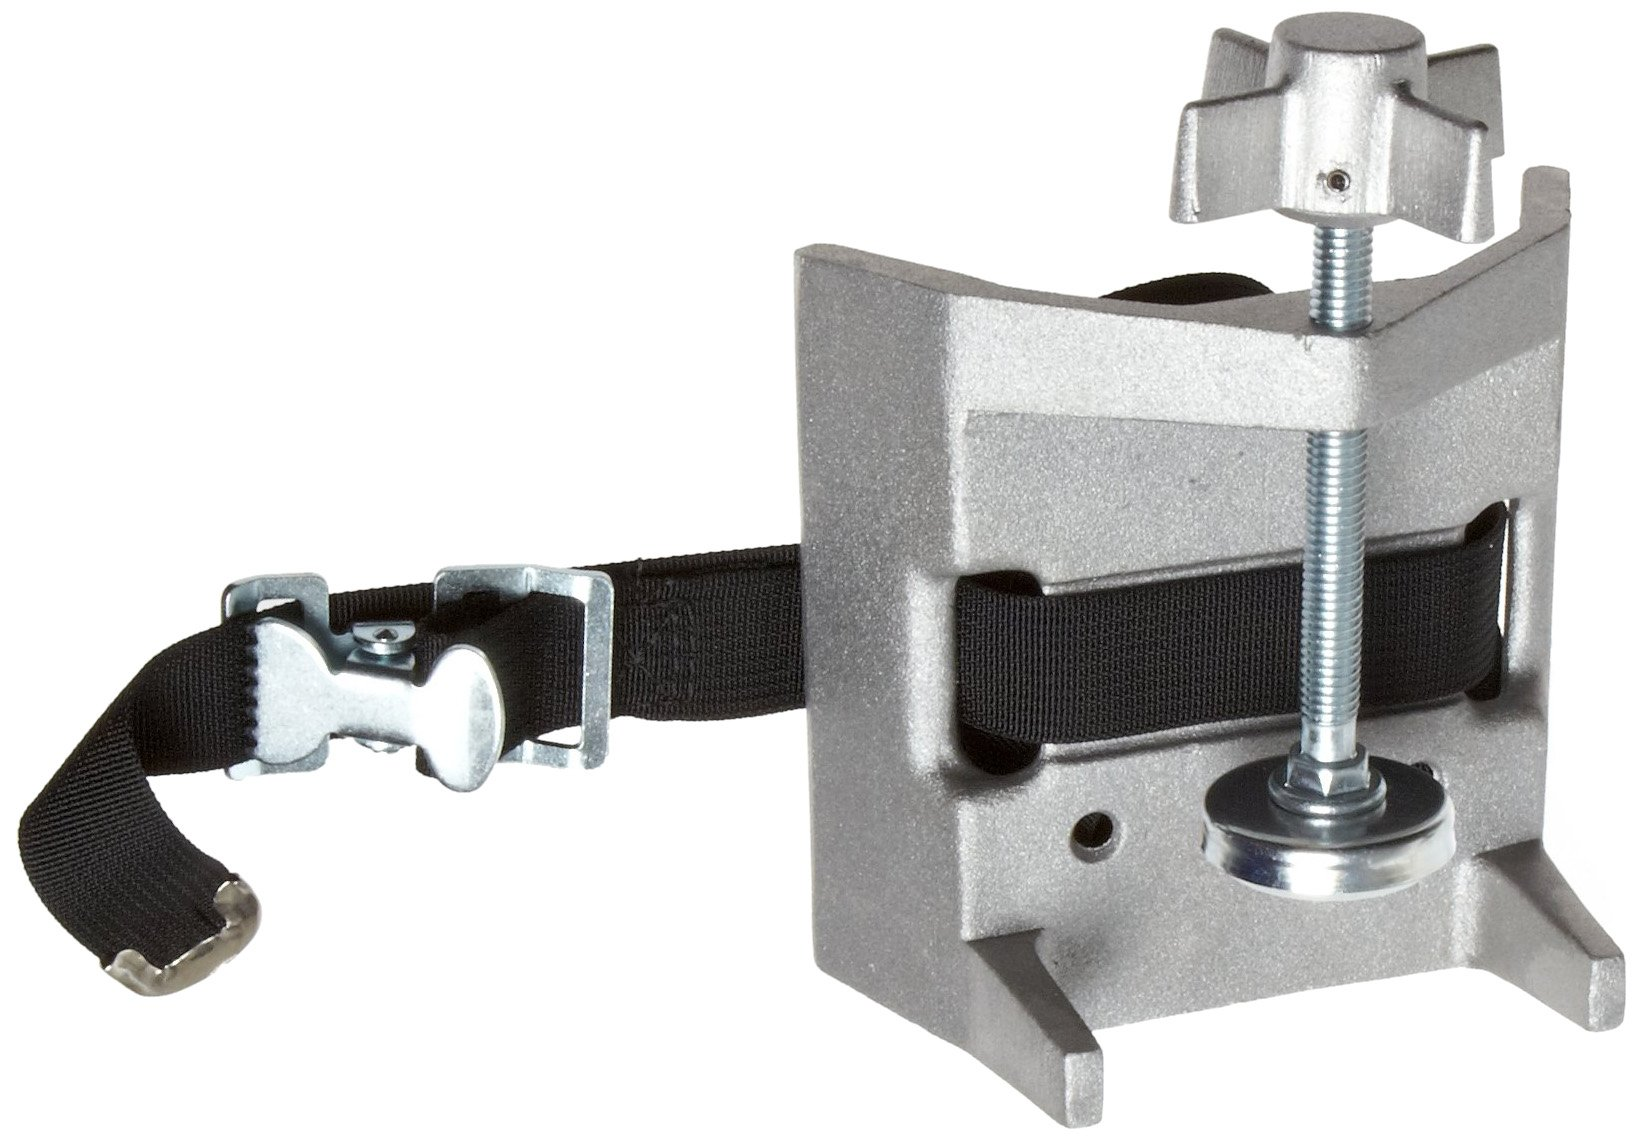 Talboys 711 Aluminum Cylinder Bench Clamp with Strap, 3.25'' Length x 5.25'' Width x 6.5'' Height